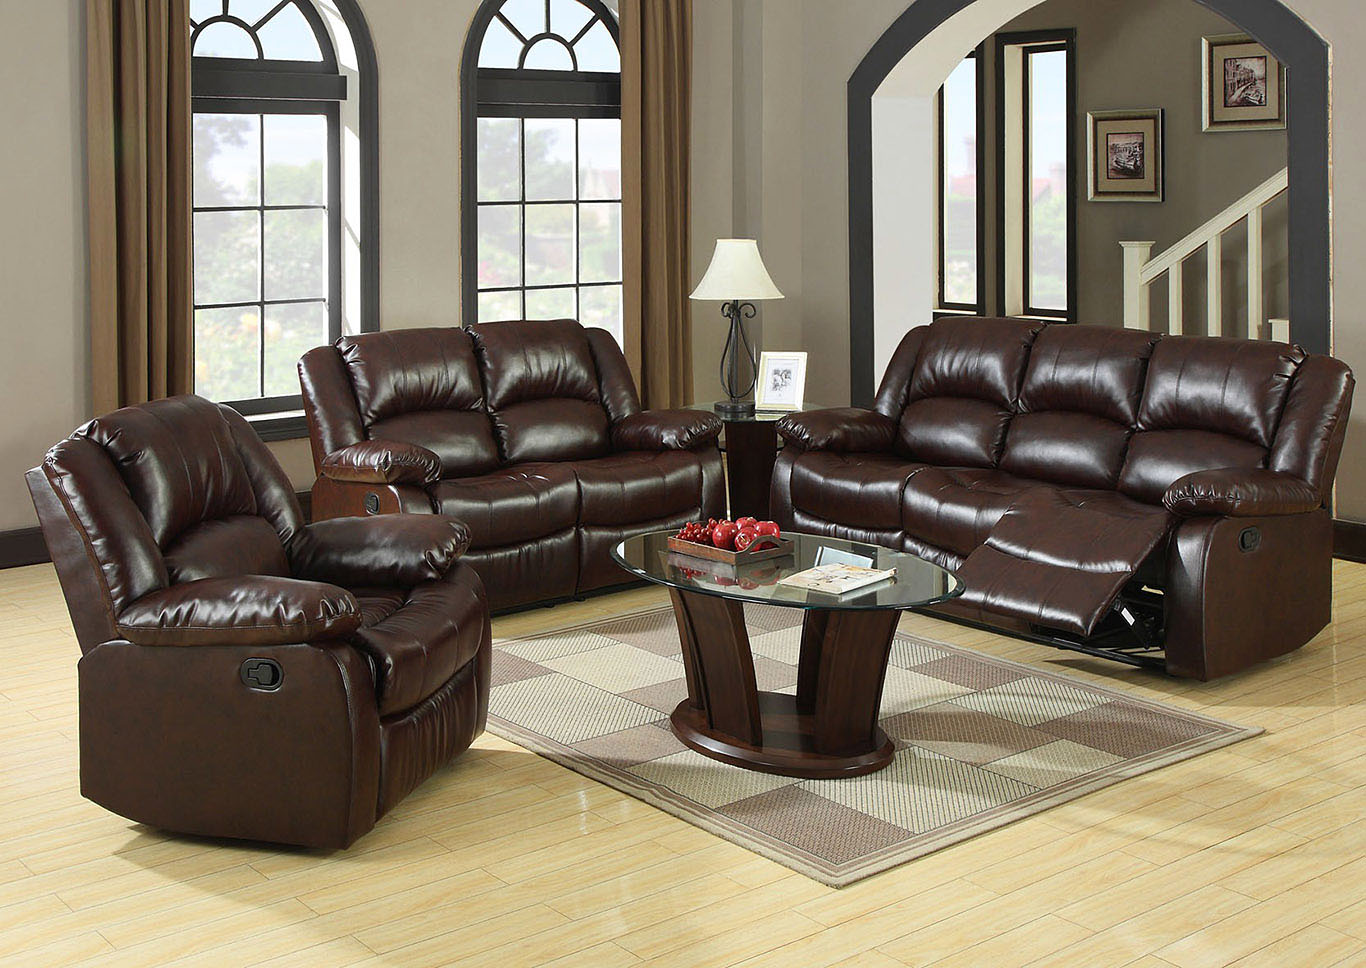 iteminformation living nobg loveseat homelegance with console recliners recliner double room glider center